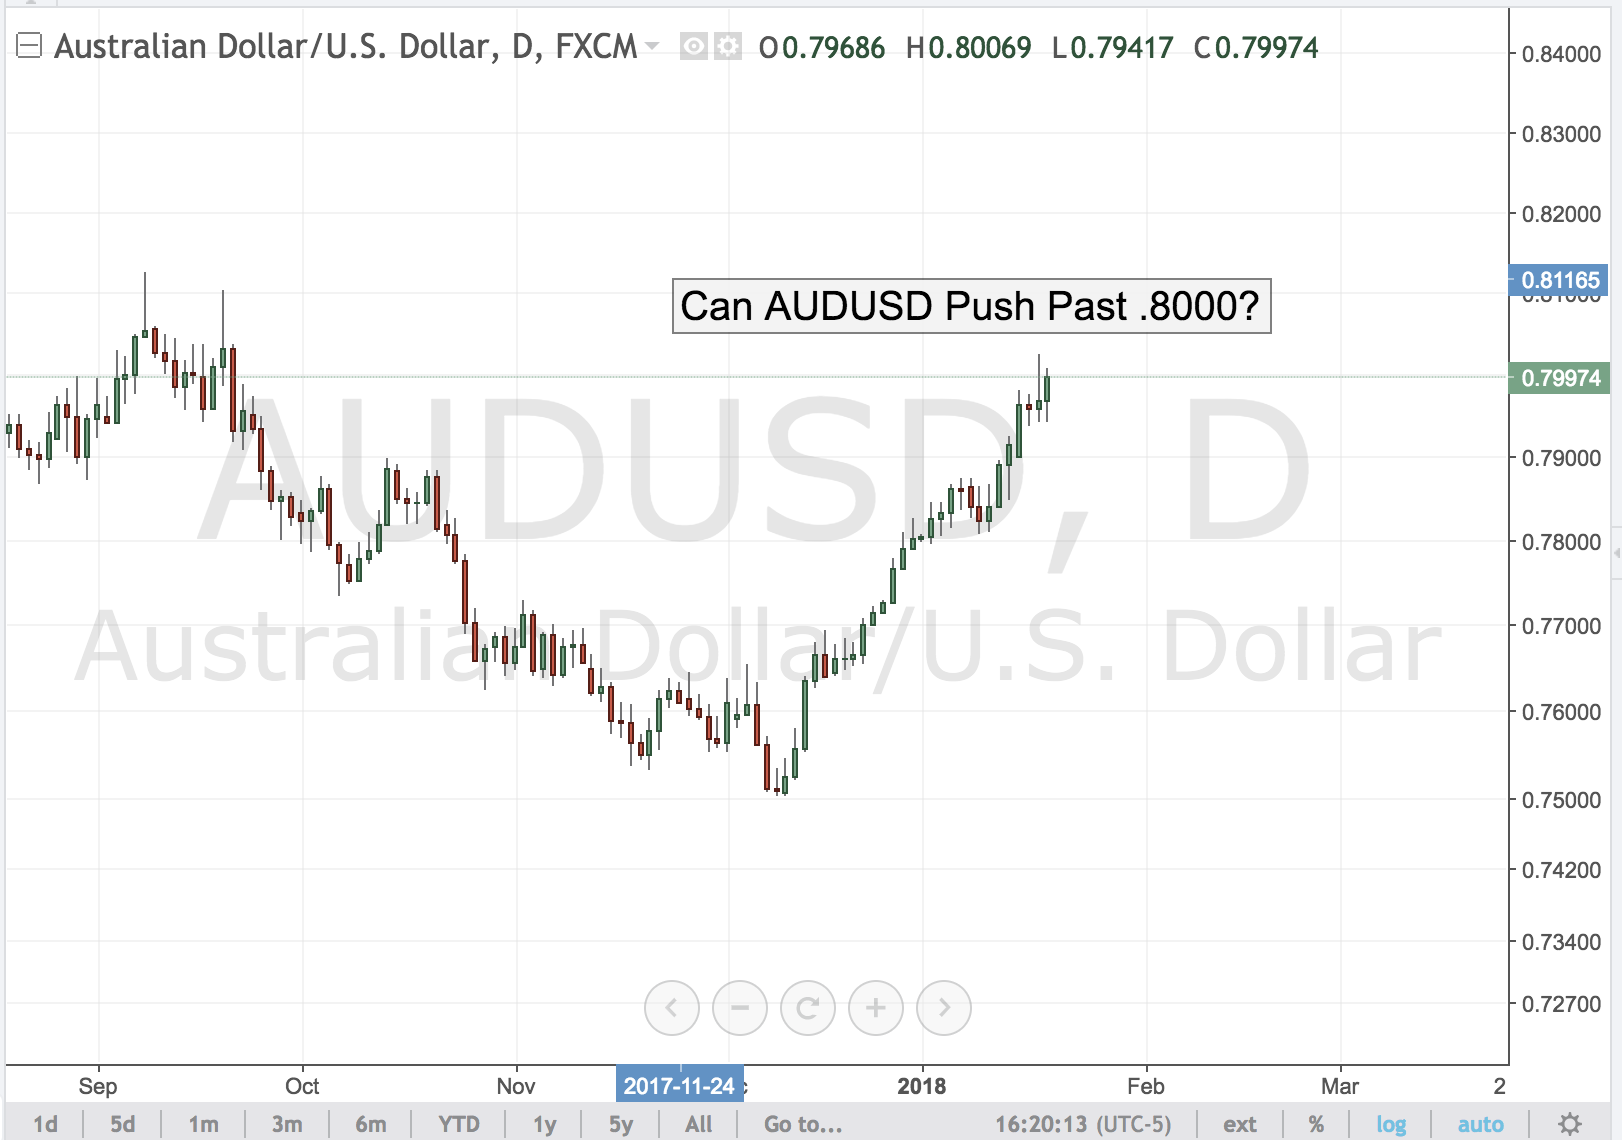 Can AUDUSD Push Past .8000?